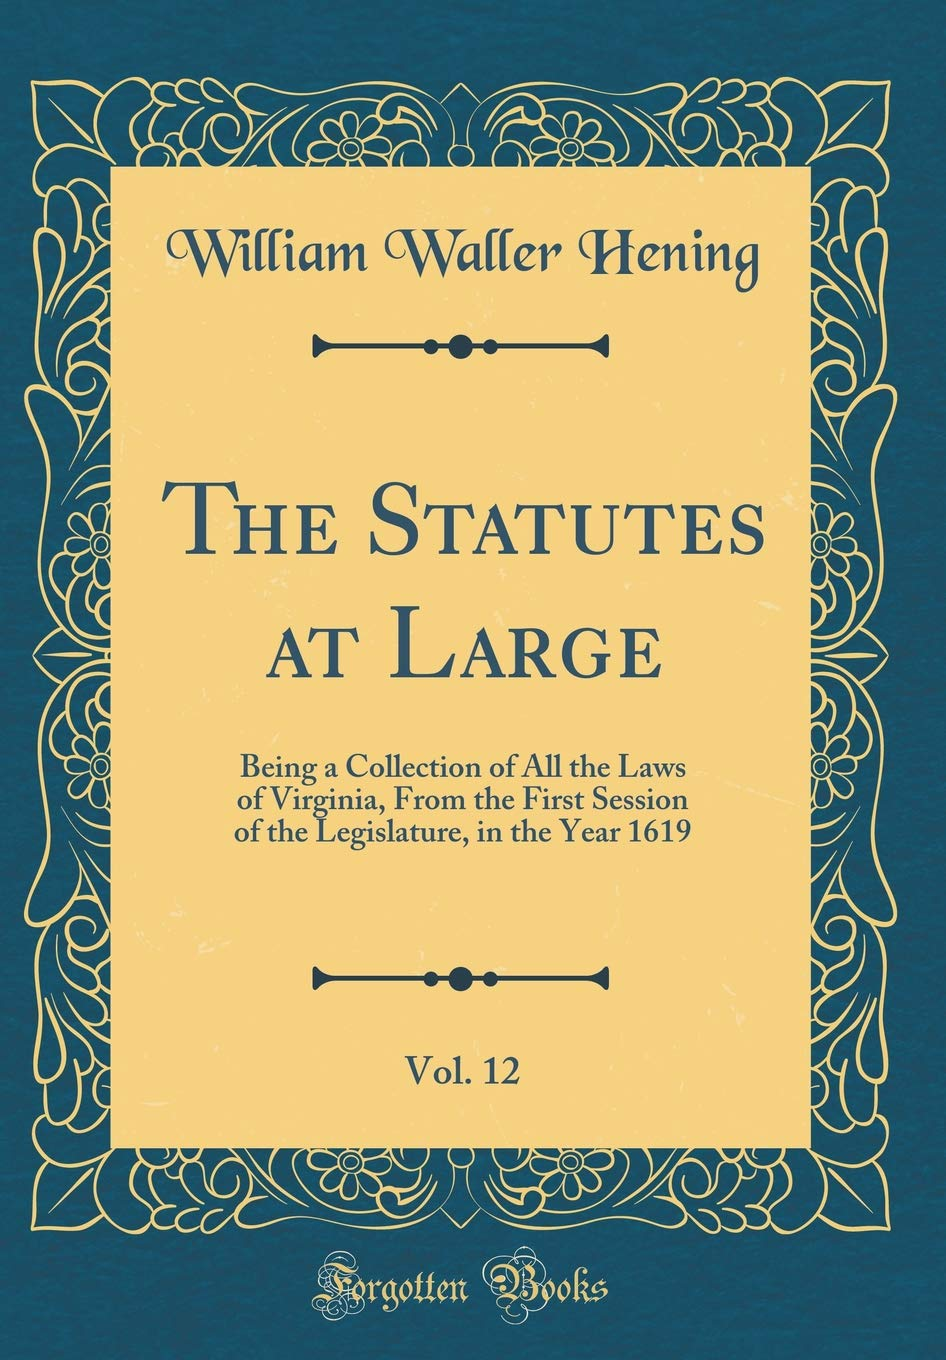 Download The Statutes at Large, Vol. 12: Being a Collection of All the Laws of Virginia, from the First Session of the Legislature, in the Year 1619 (Classic Reprint) pdf epub